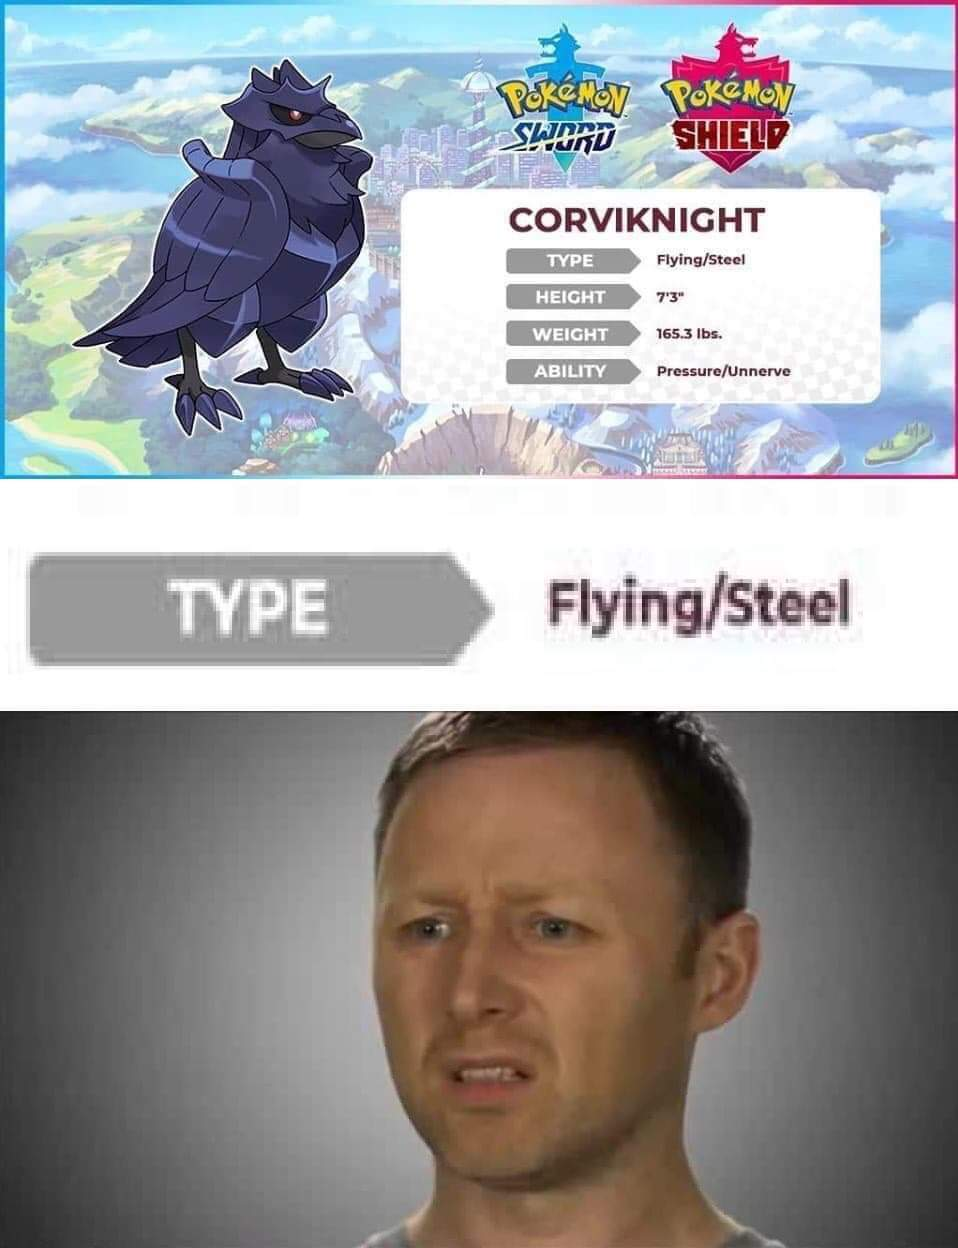 Croviknight looks dope, hope he's gonna be good ingame. I really like most of the new pokemon designs - meme